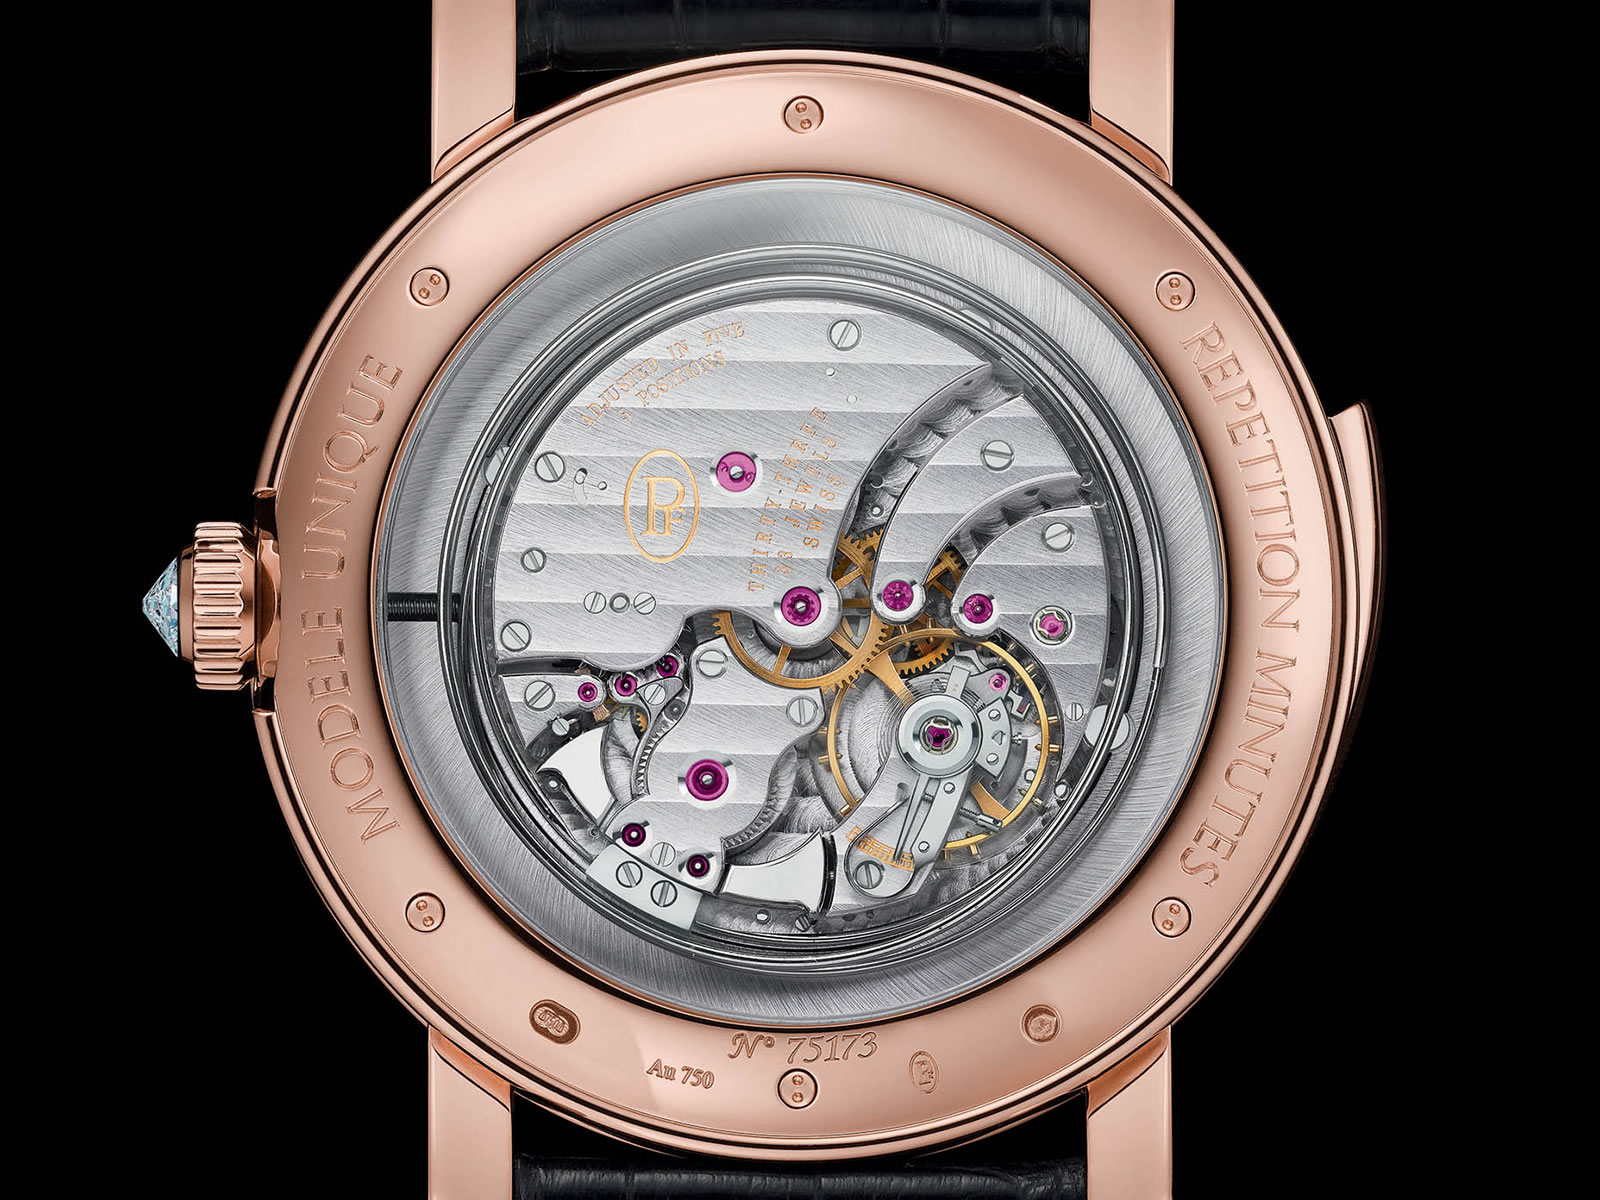 pfh476-1001300-ha1241-parmigiani-fleurier-toric-capitole-in-rose-gold-5.jpg